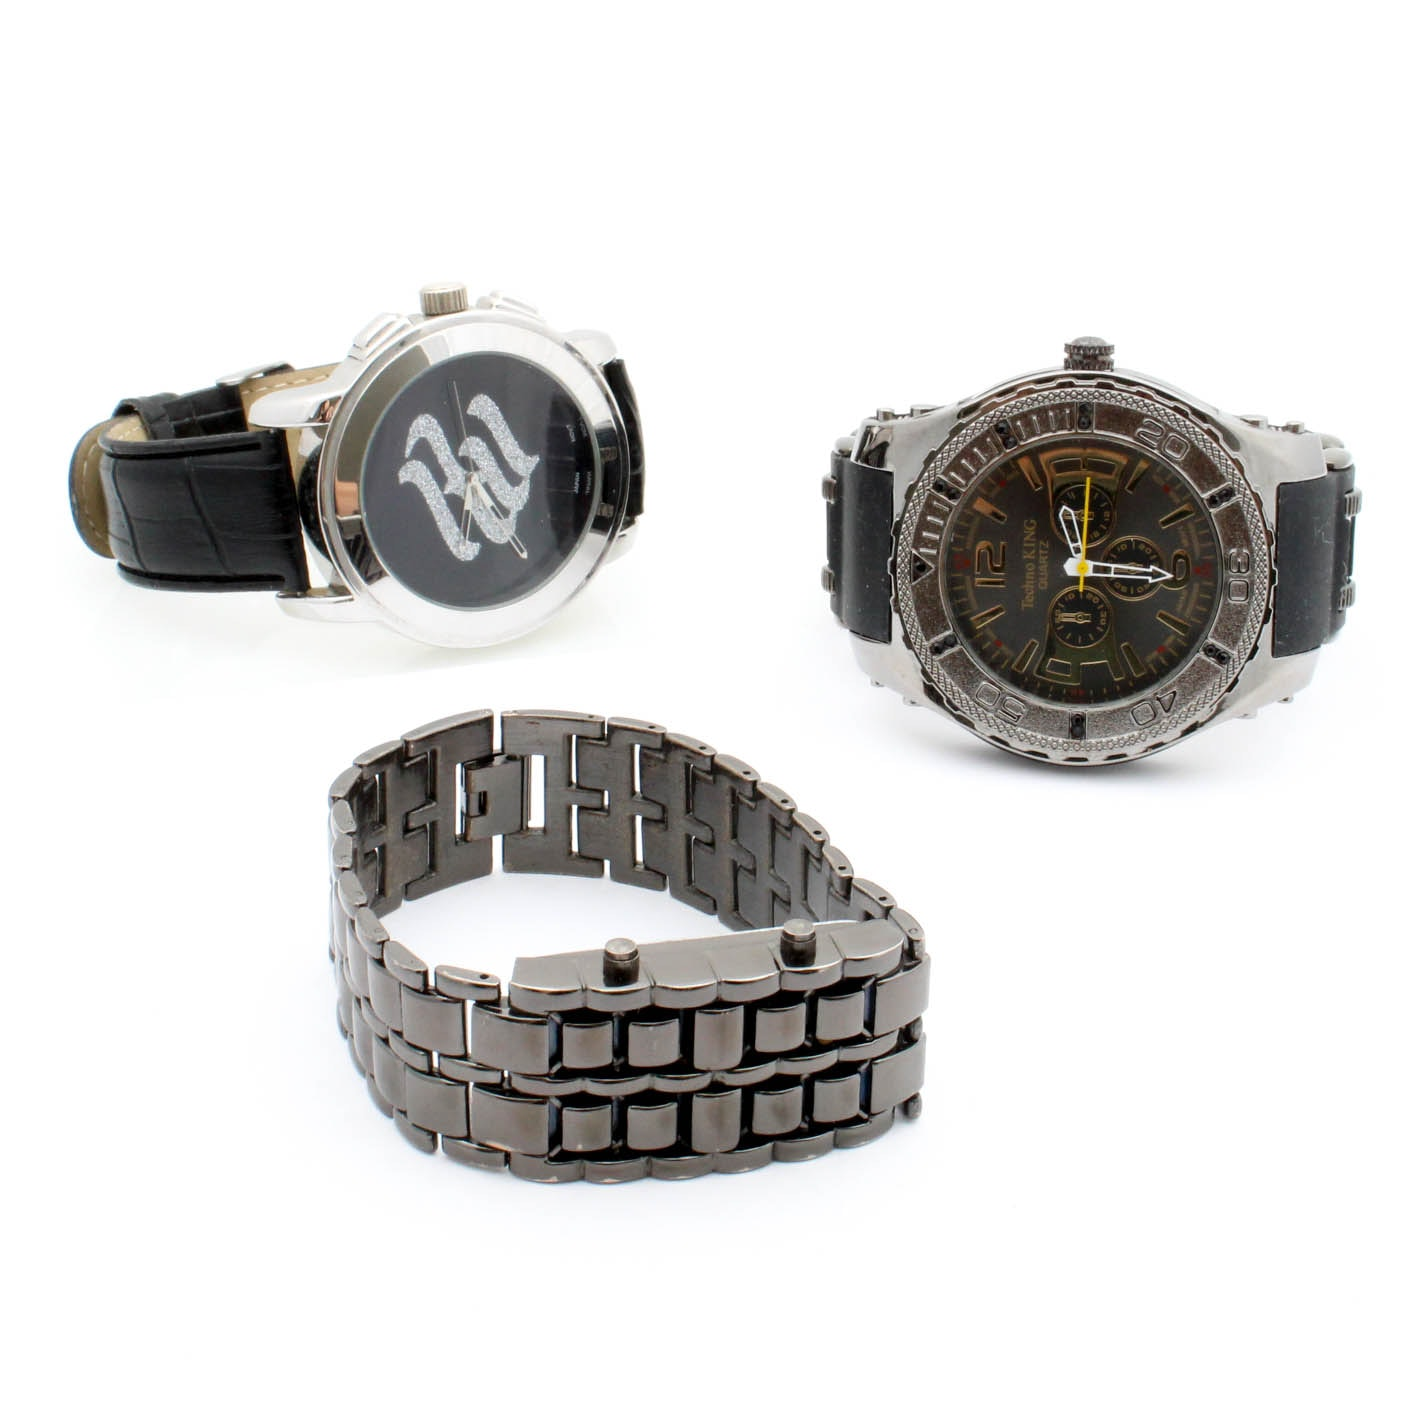 Wristwatches Featuring Rocawear, Techno King